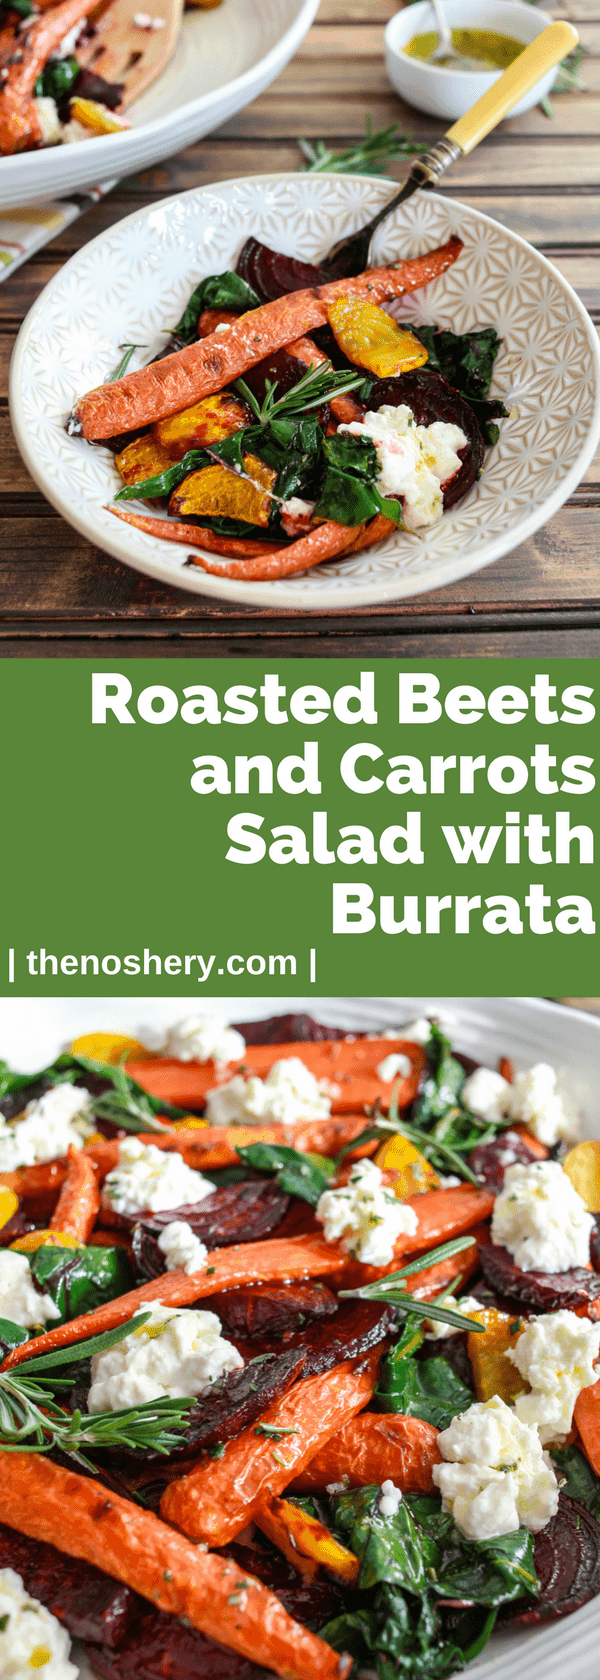 Roasted Beets and Carrots Salad with Burrata | Roasted beets and carrots with sautéed beet greens tossed with honey rosemary vinaigrette and topped with burrata. A perfect fall vegetable side dish. | The Noshery